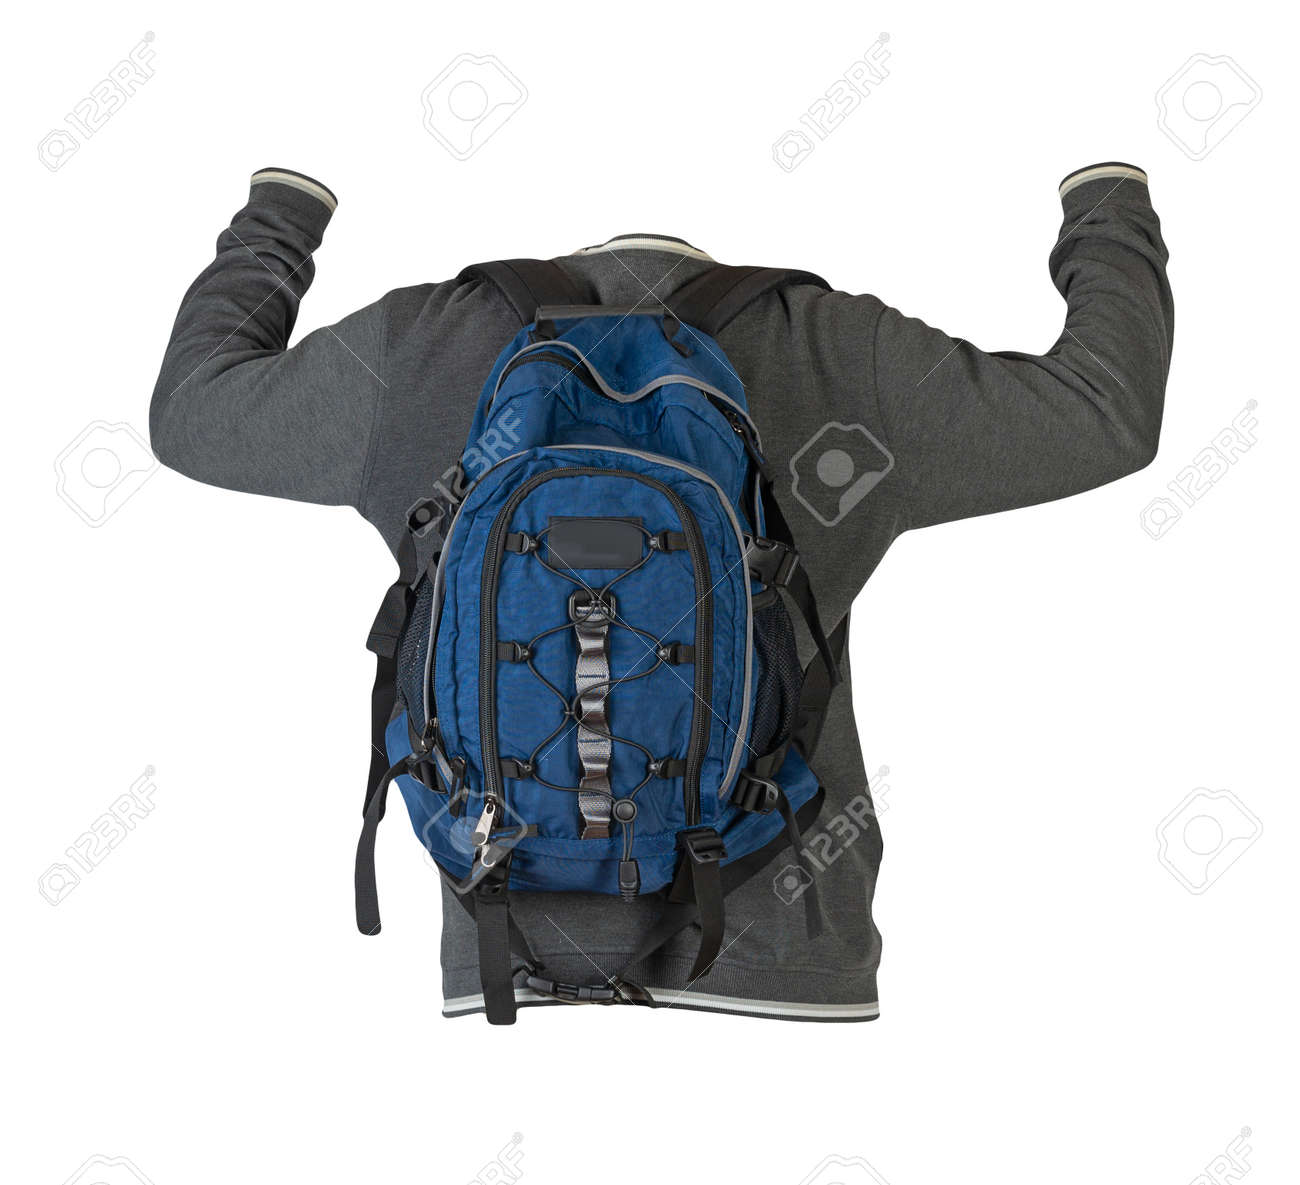 gray sweatshirt and blue backpack insulated on white background - 172073959